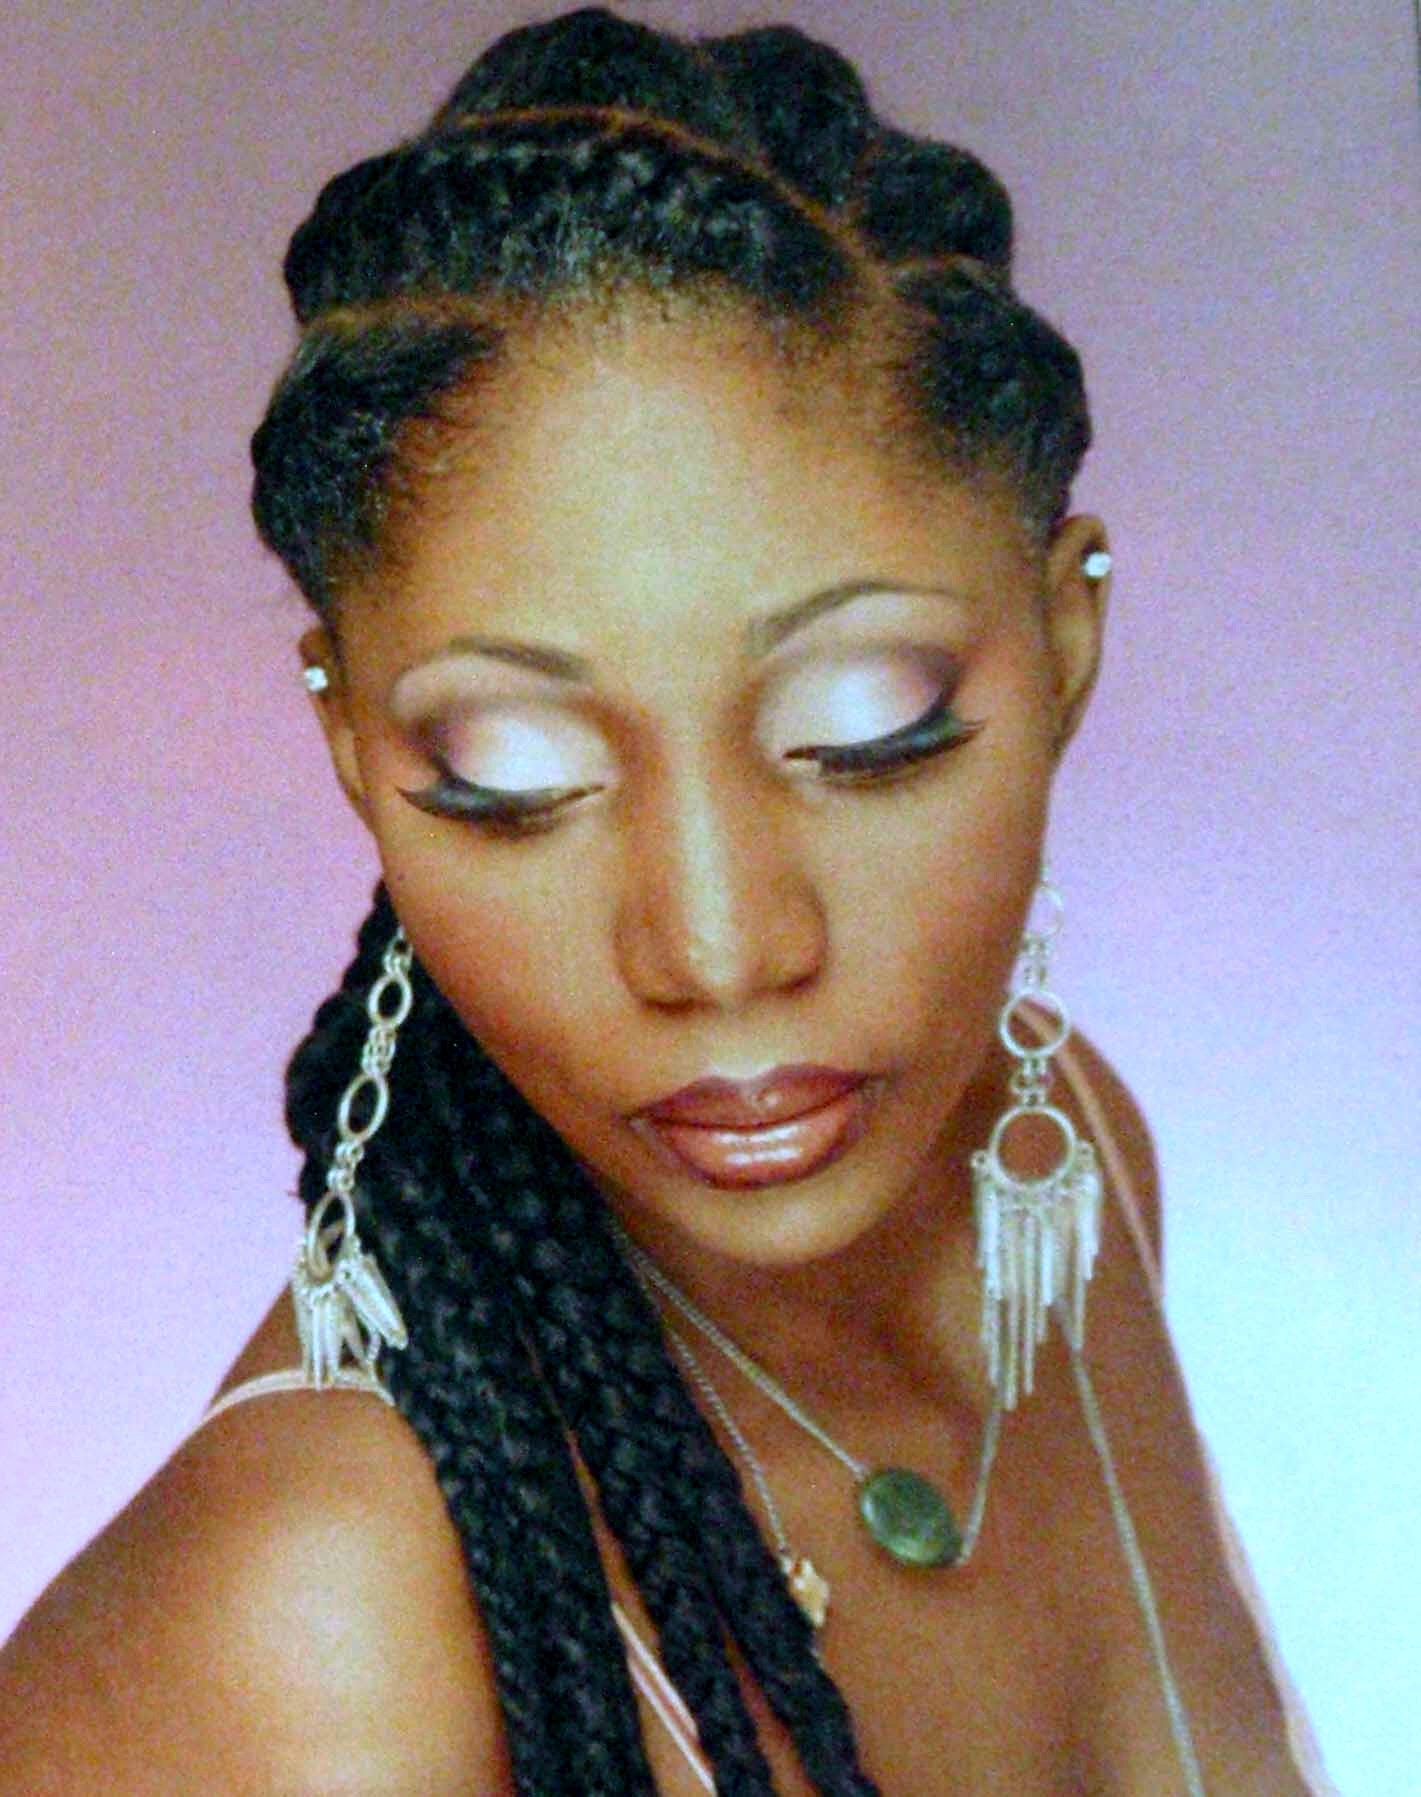 Braiding Hairstyles Ideas For Black Women - The Xerxes